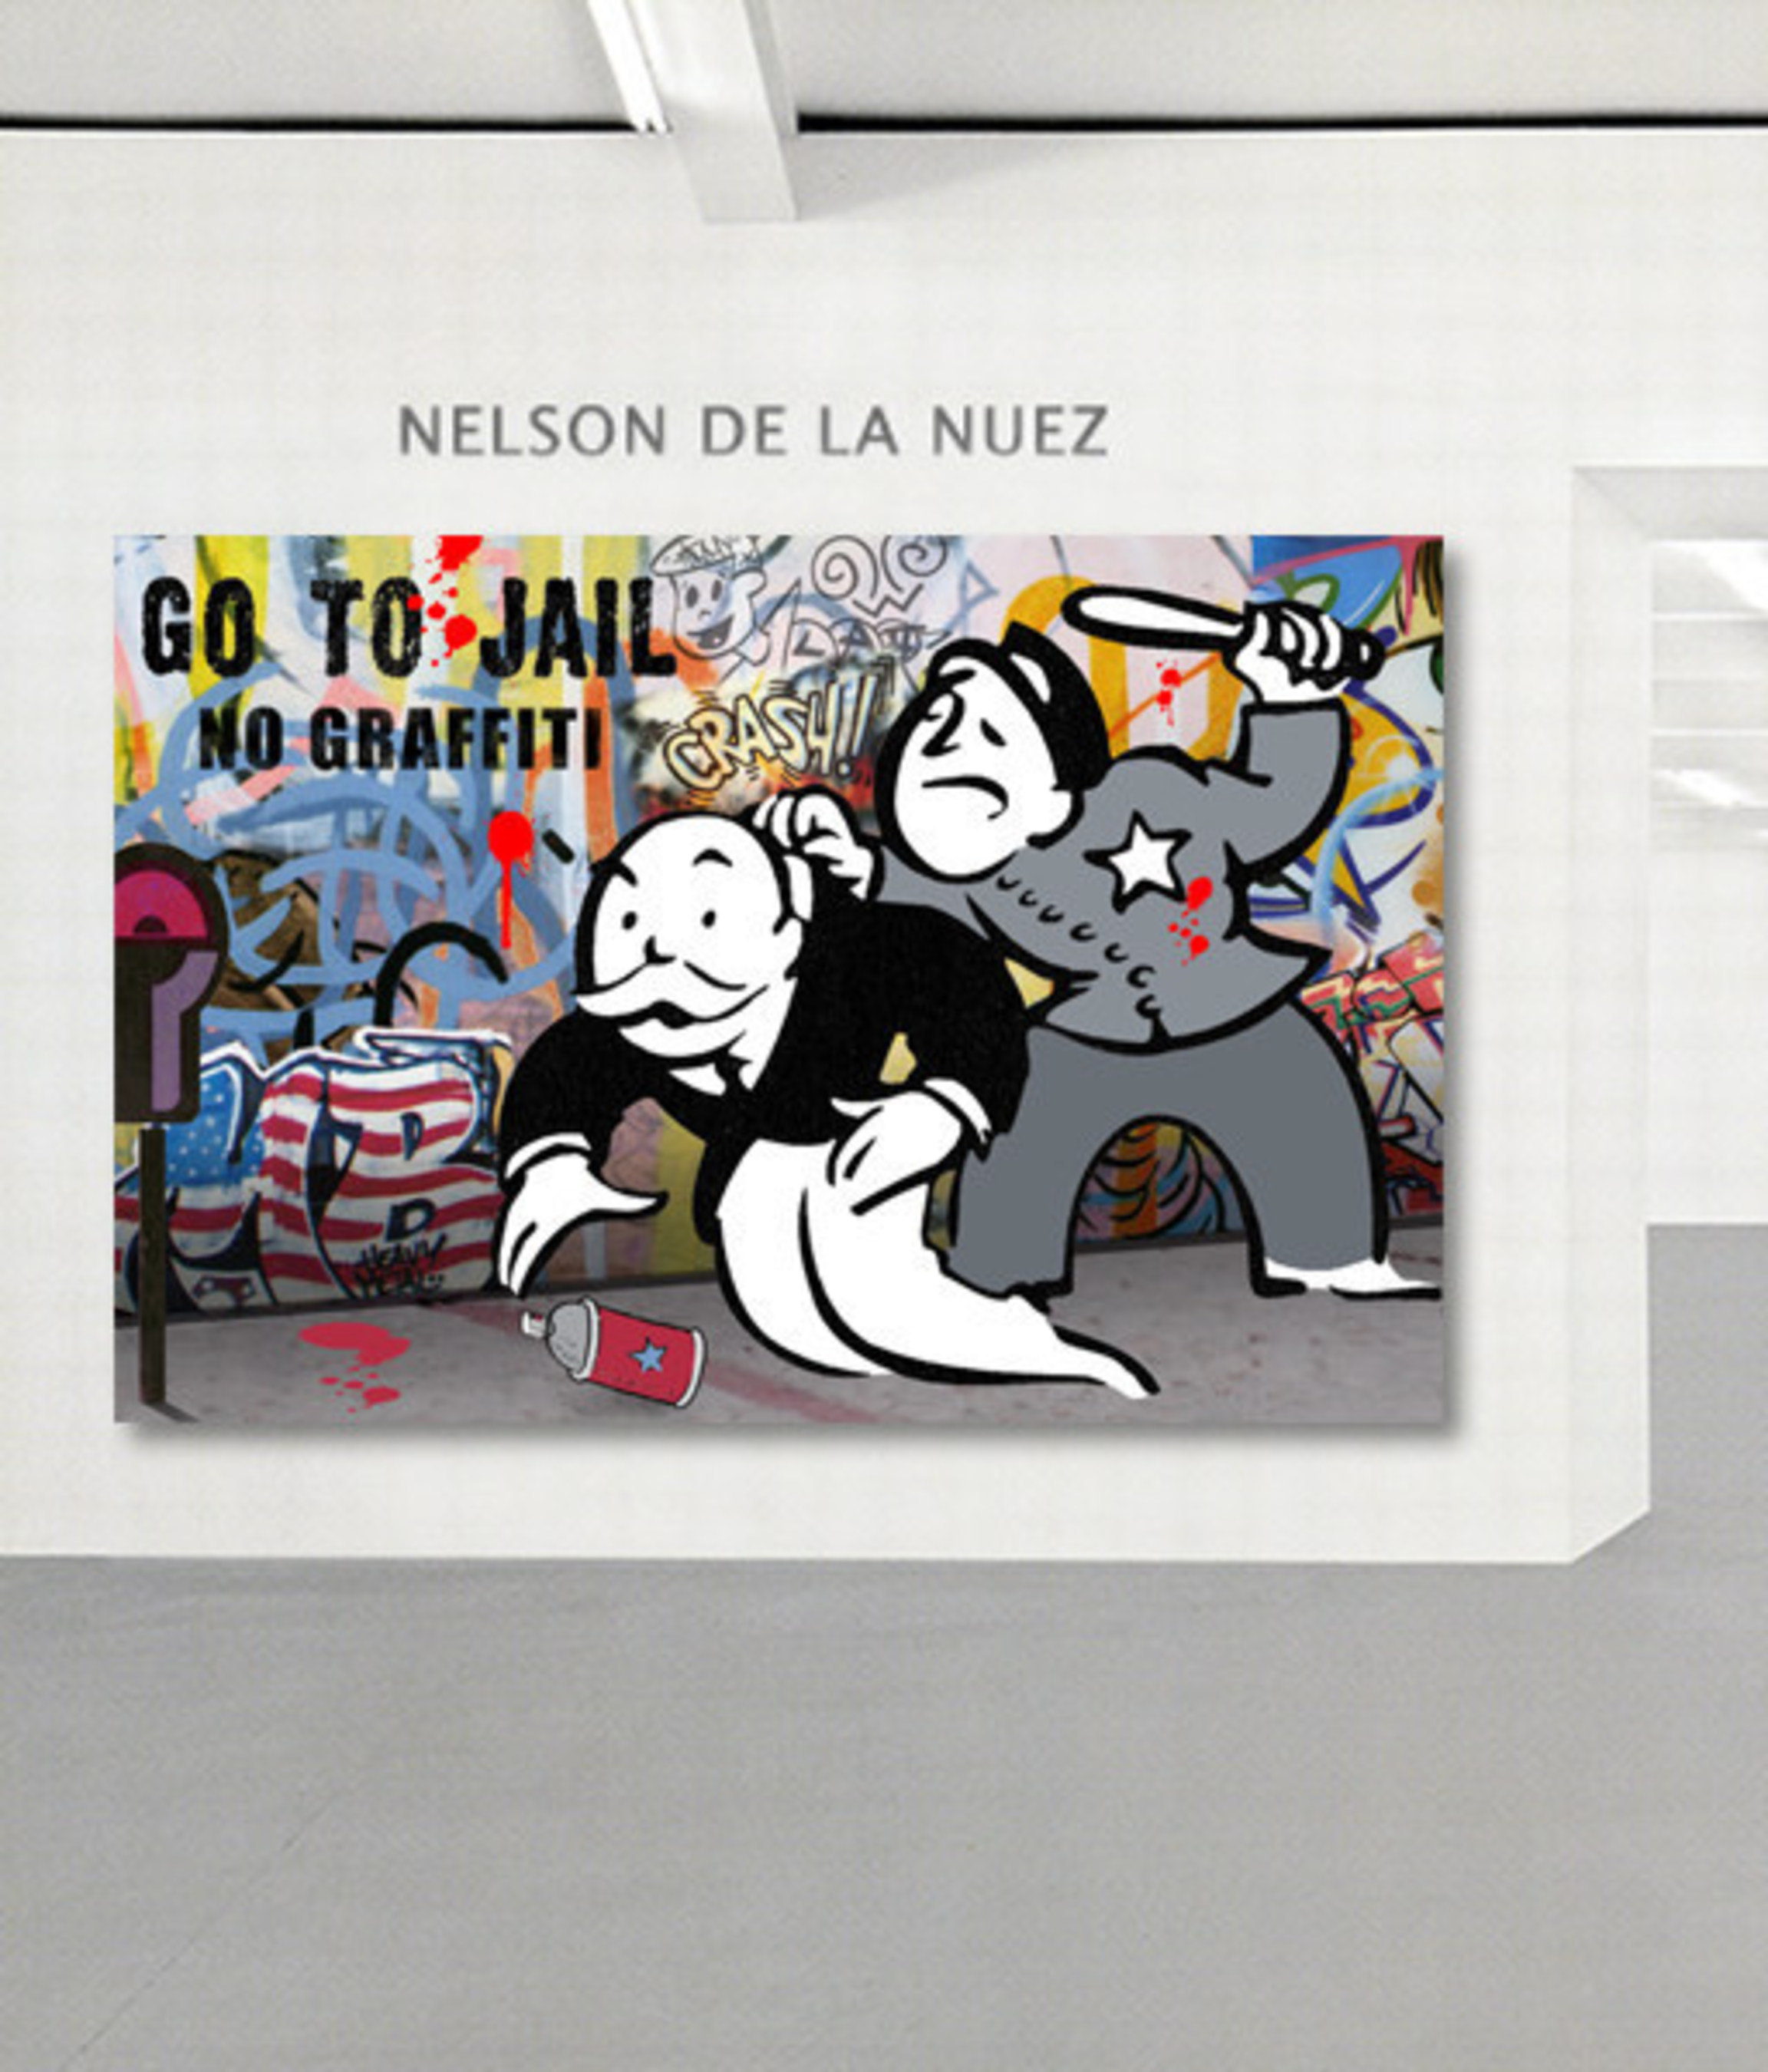 """Graffiti is Not Art:"" Hand Painted 1 of a Kind on Canvas, King of Pop Art Nelson De La Nuez"